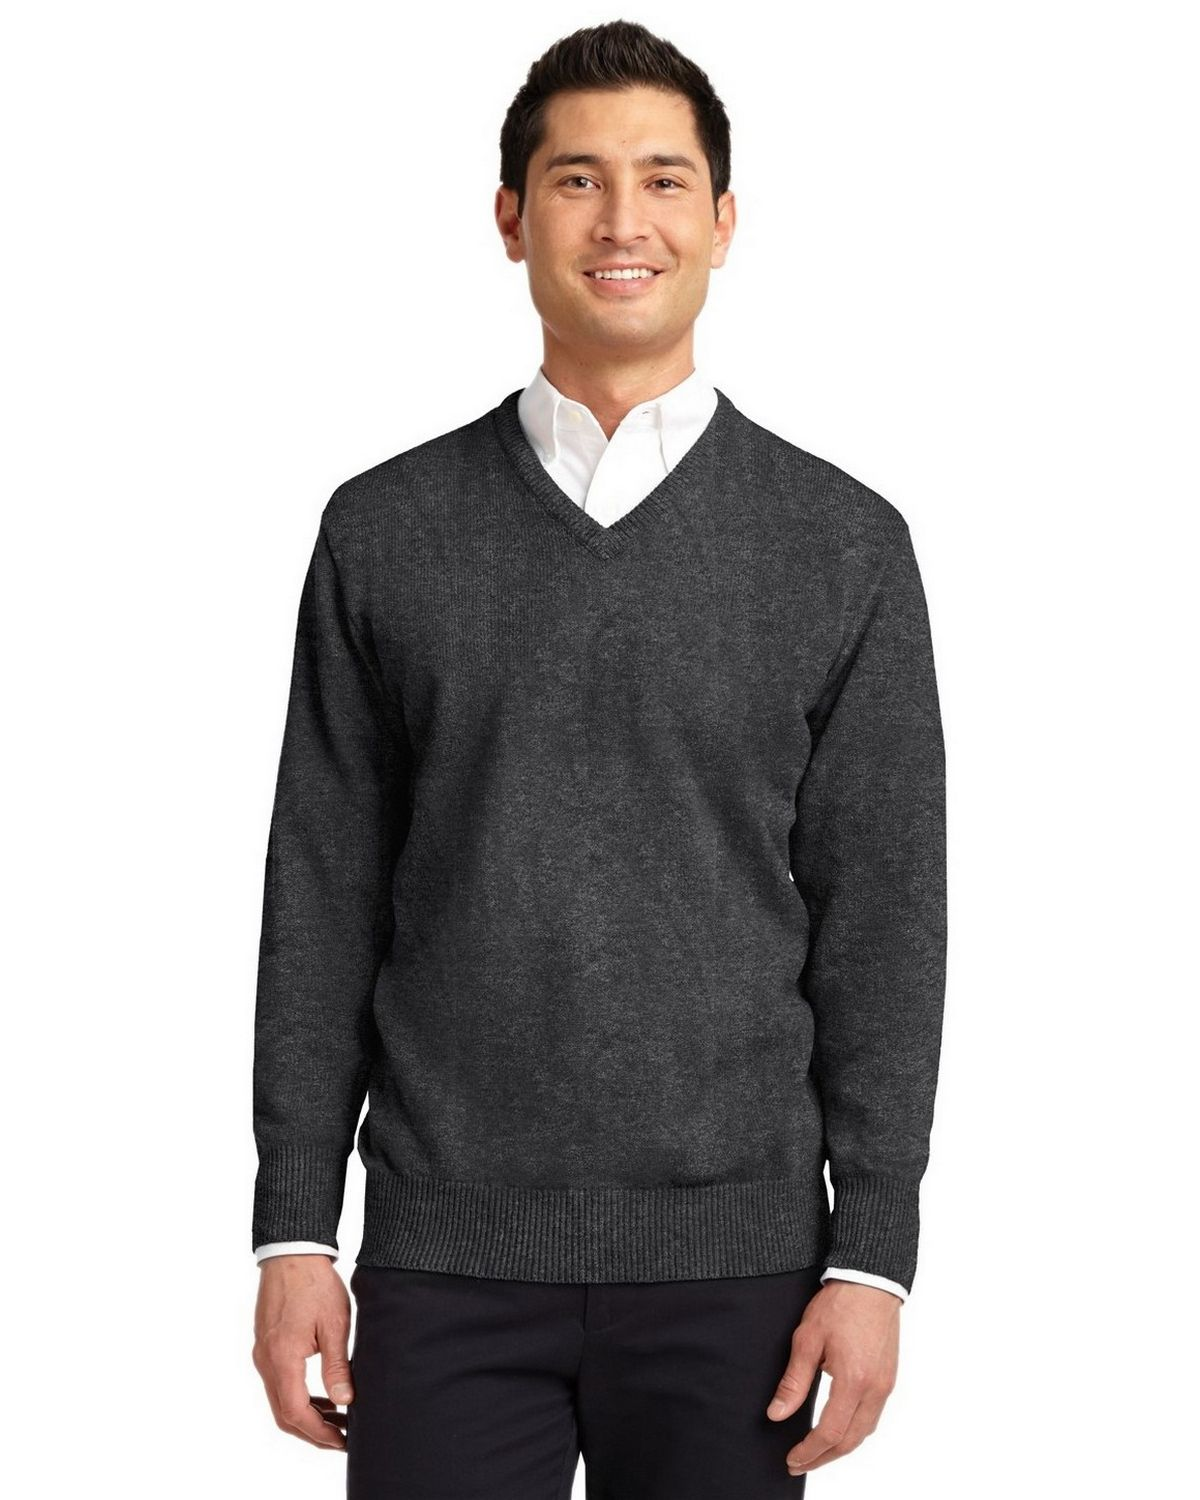 Port Authority SW300 Value V-Neck Sweater - Charcoal Grey - XL SW300